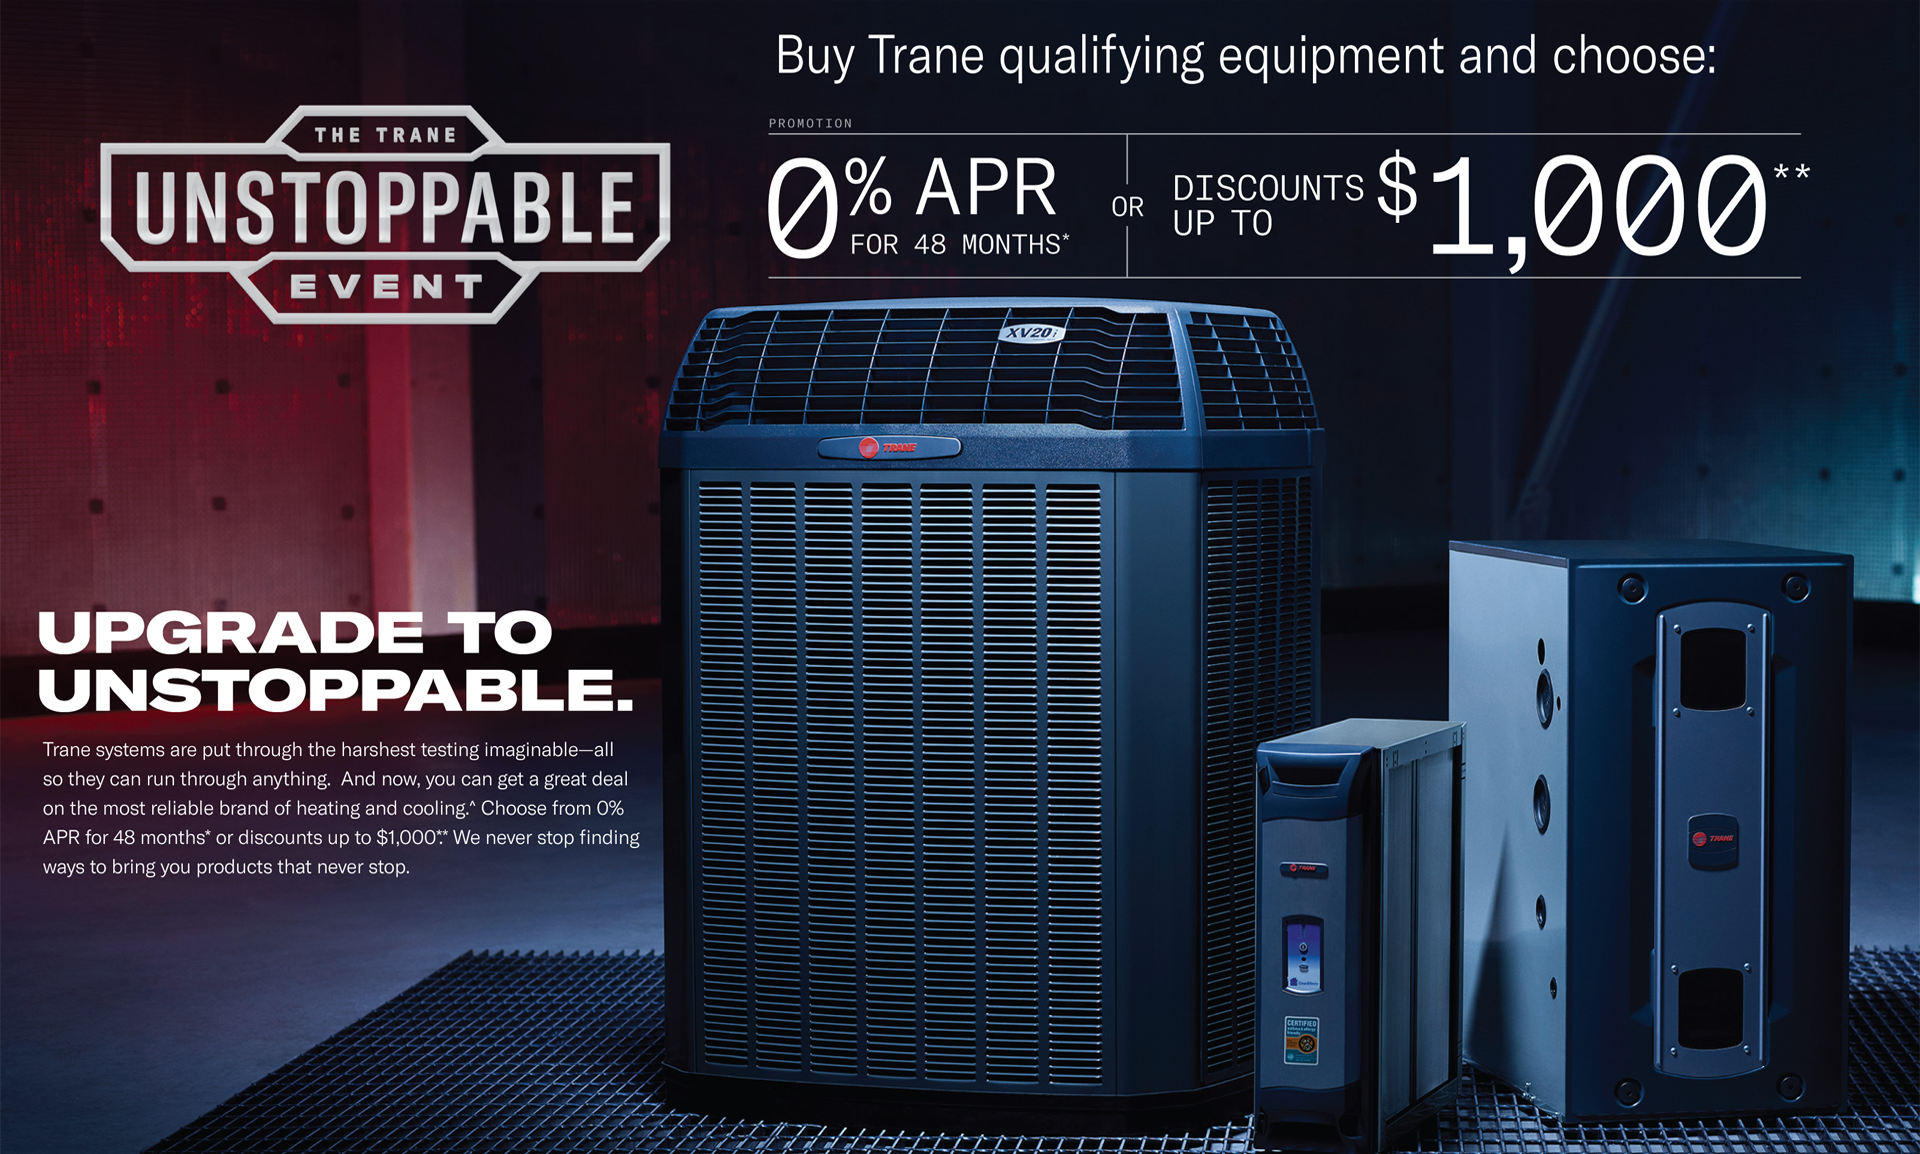 Trane Fall 2018 Unstoppable Promotion